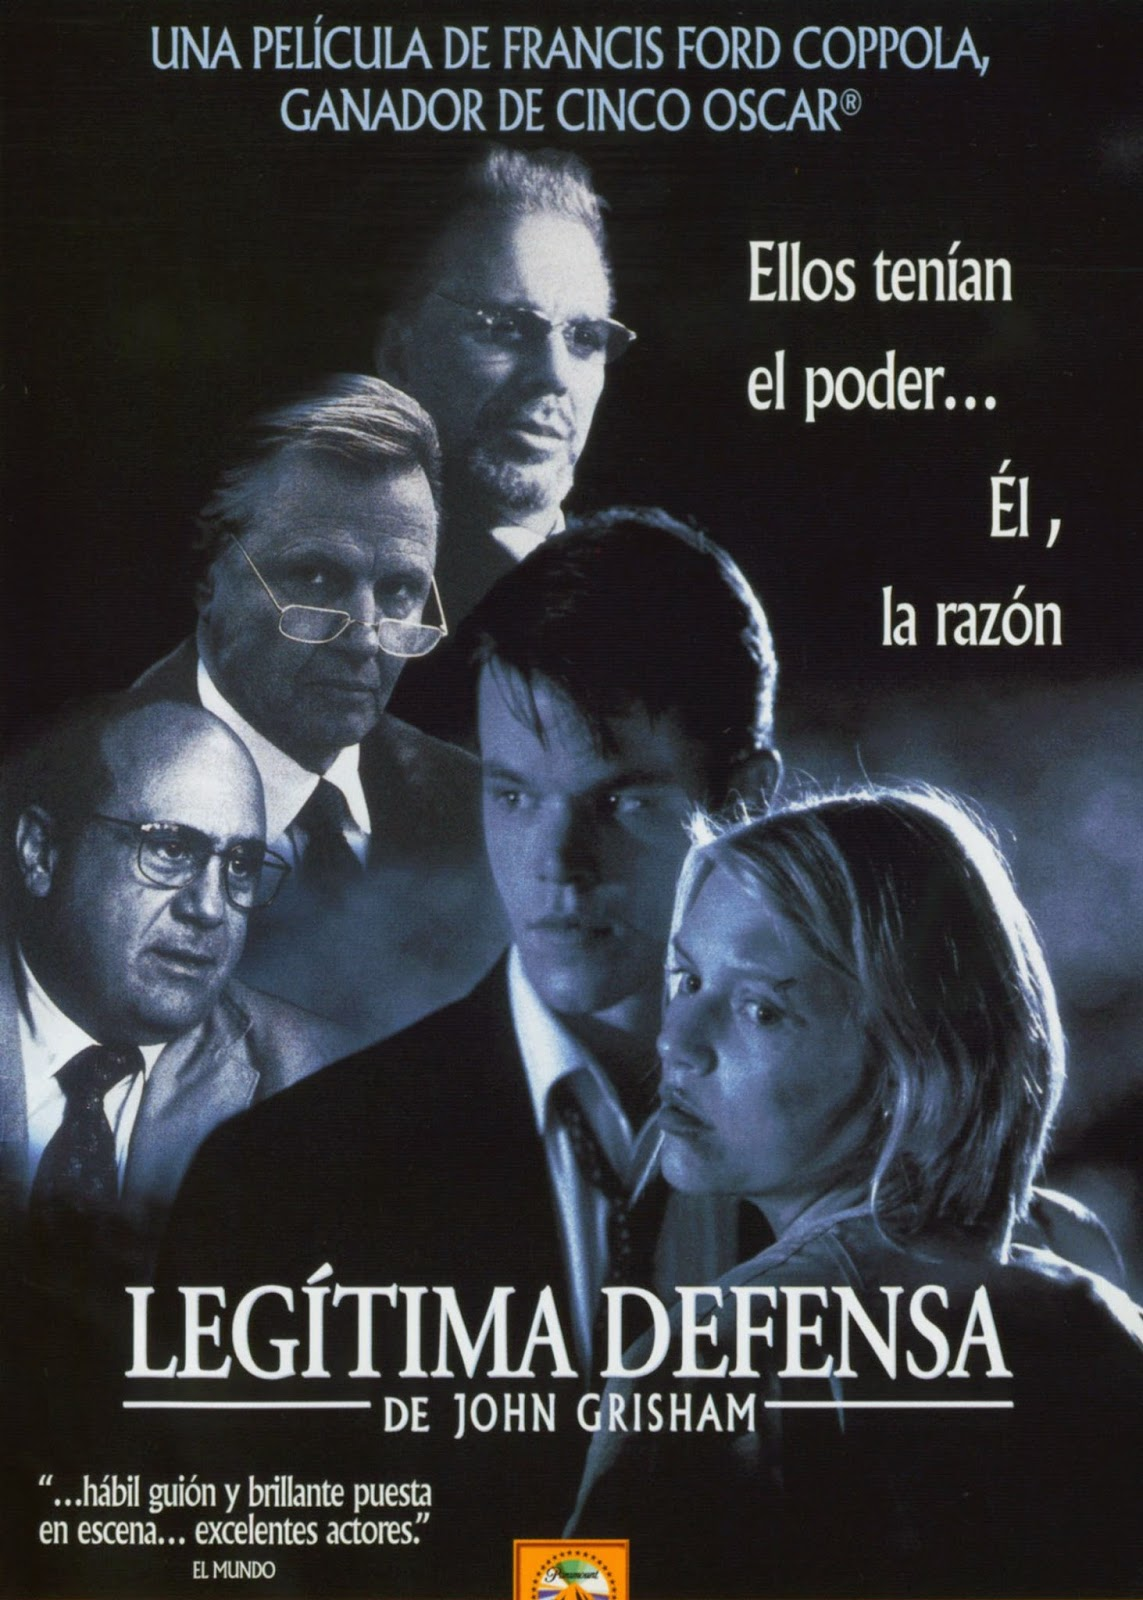 Legítima defensa (1997)